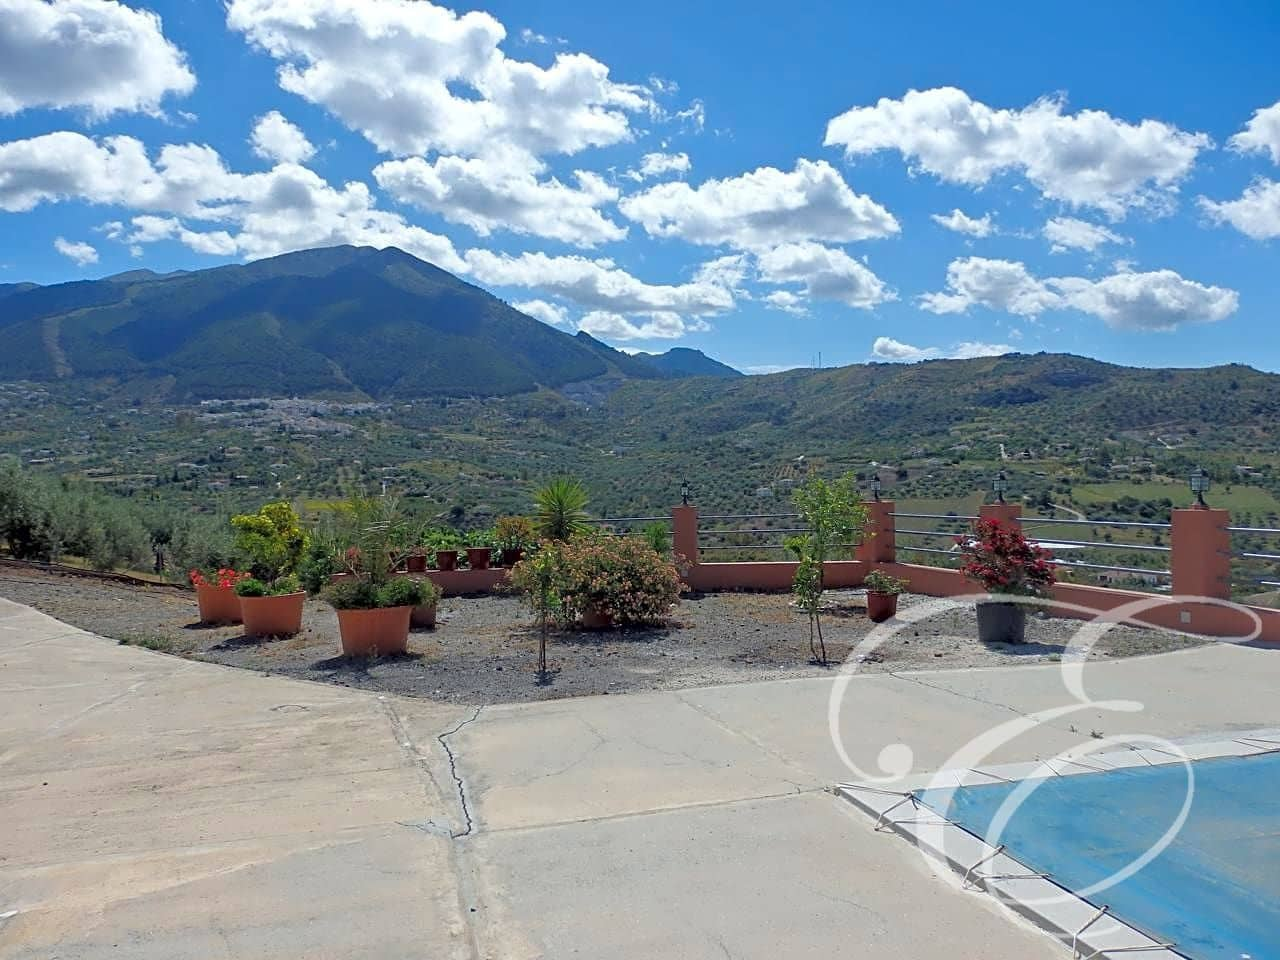 3 bedroom Finca/Country House for sale in Alcaucin with pool - € 180,000 (Ref: 4667685)